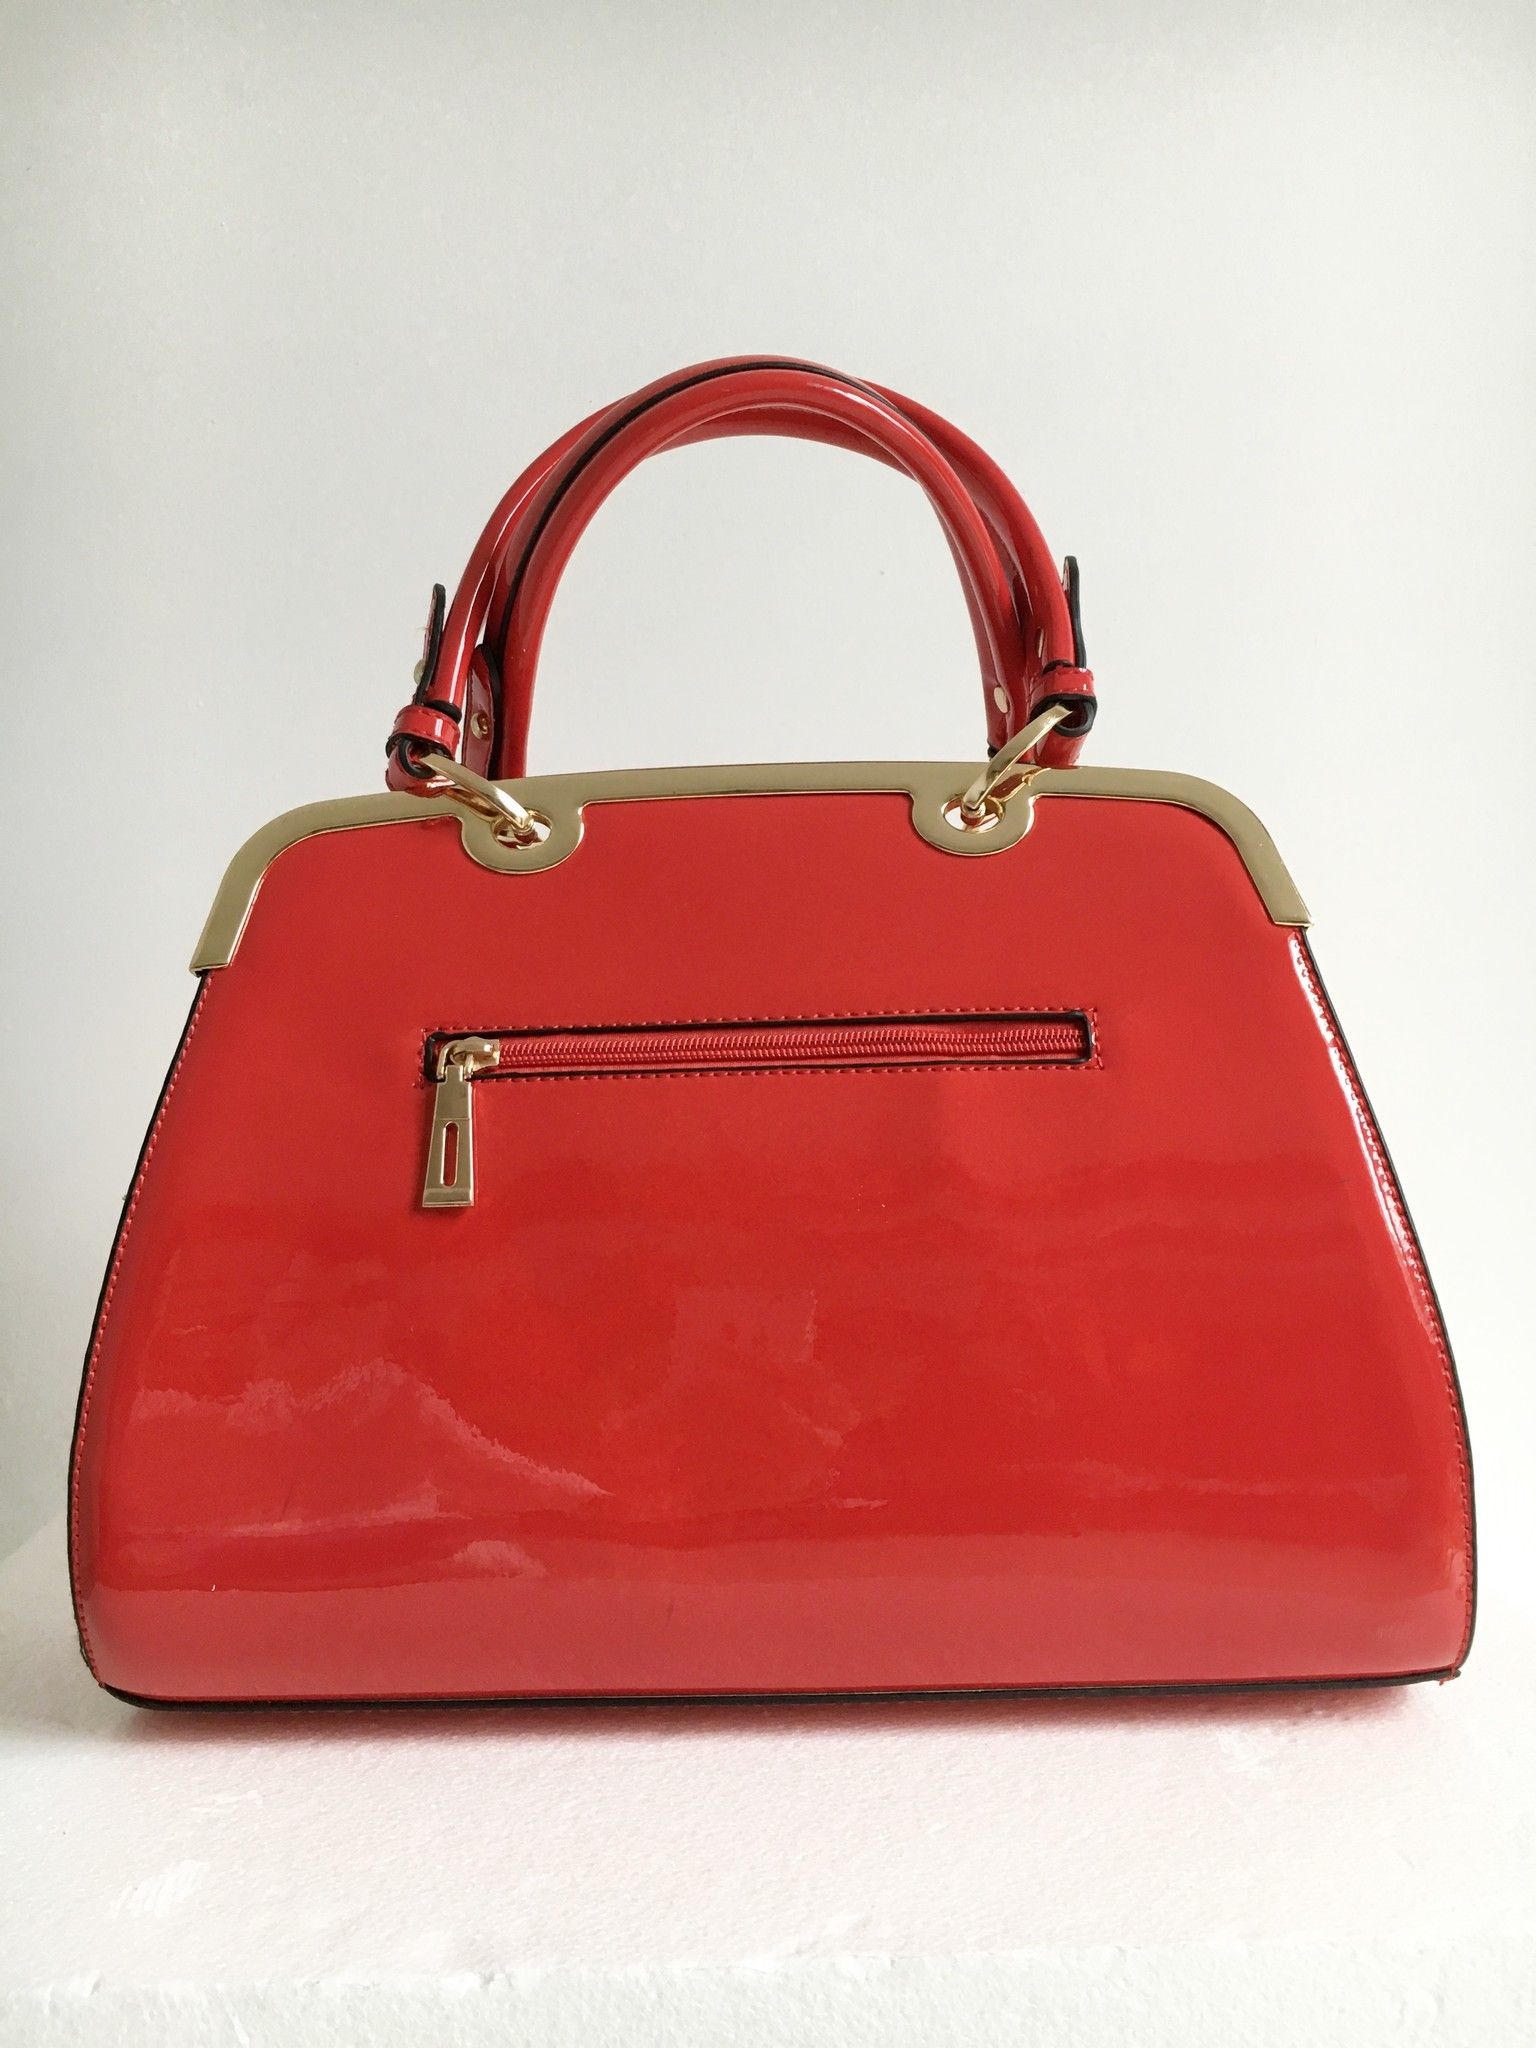 Patent leather handbag with gold trim Cod.1024